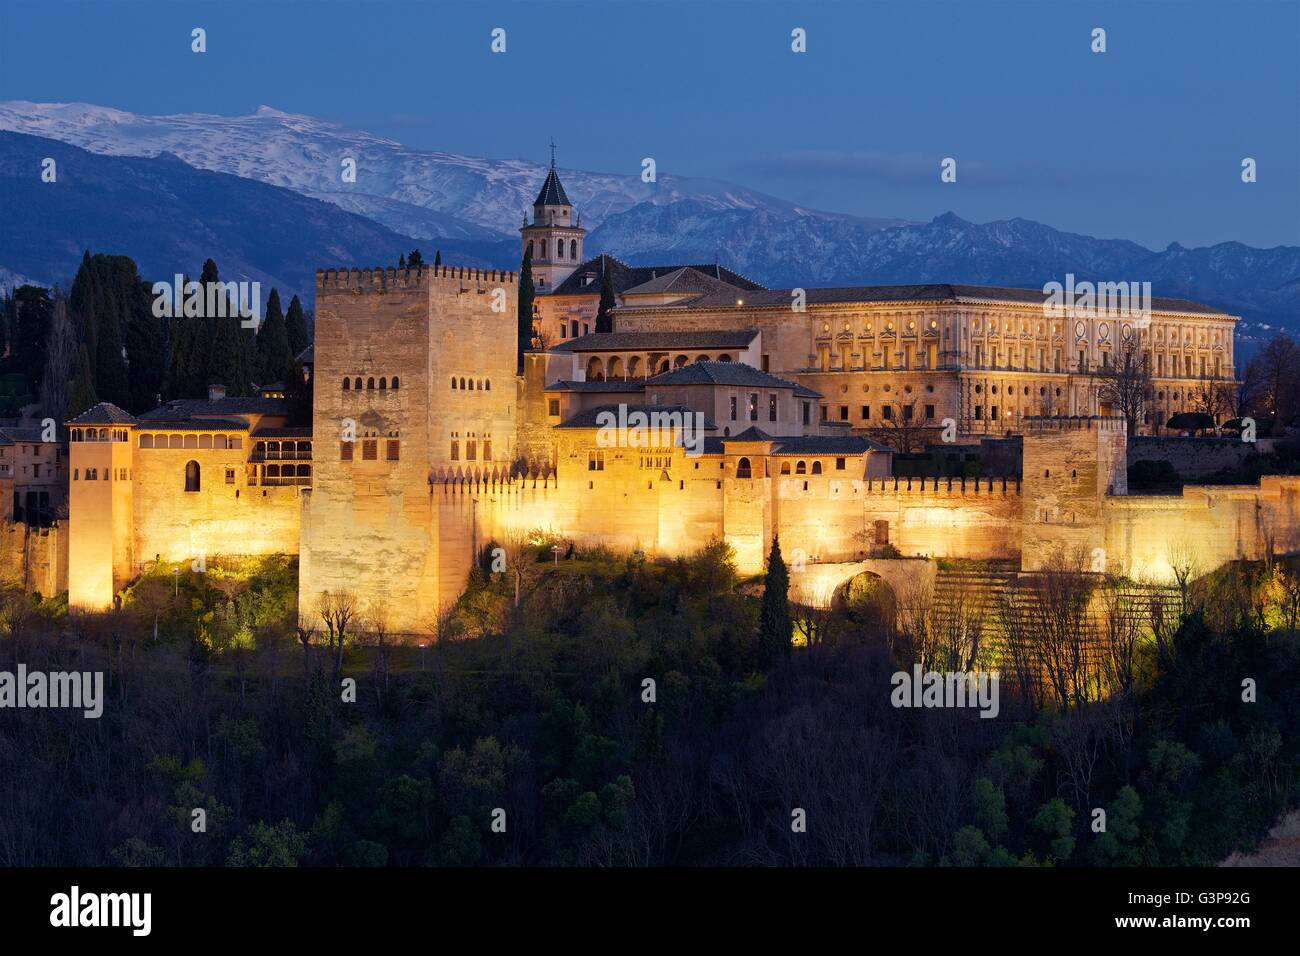 A night time image taken from Mirador San Nicholas of the Alhambra palace lit up at night - Stock Image